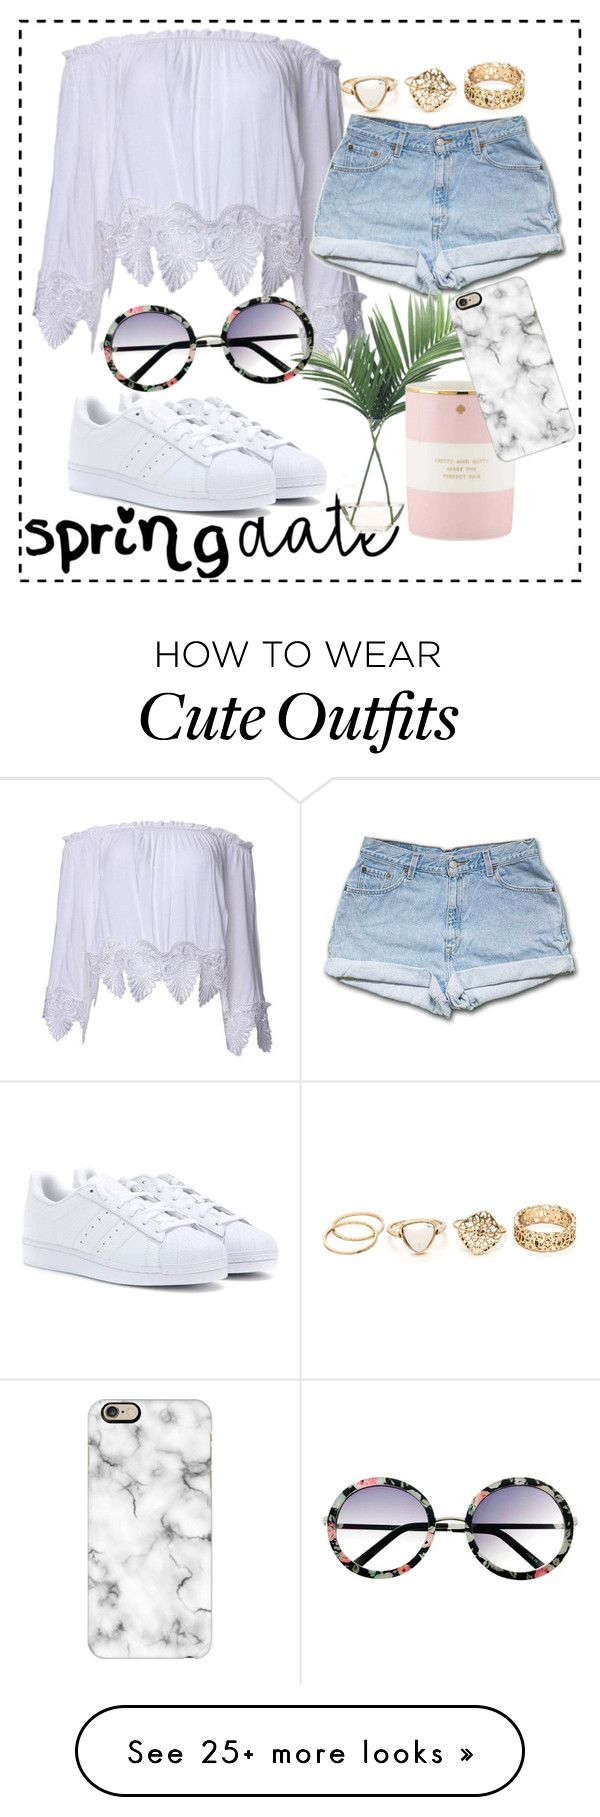 """""""spring date outfit guide"""" by ginamariev on Polyvore featuring NDI, Kate Spade, Casetify, adidas and INDIE HAIR"""